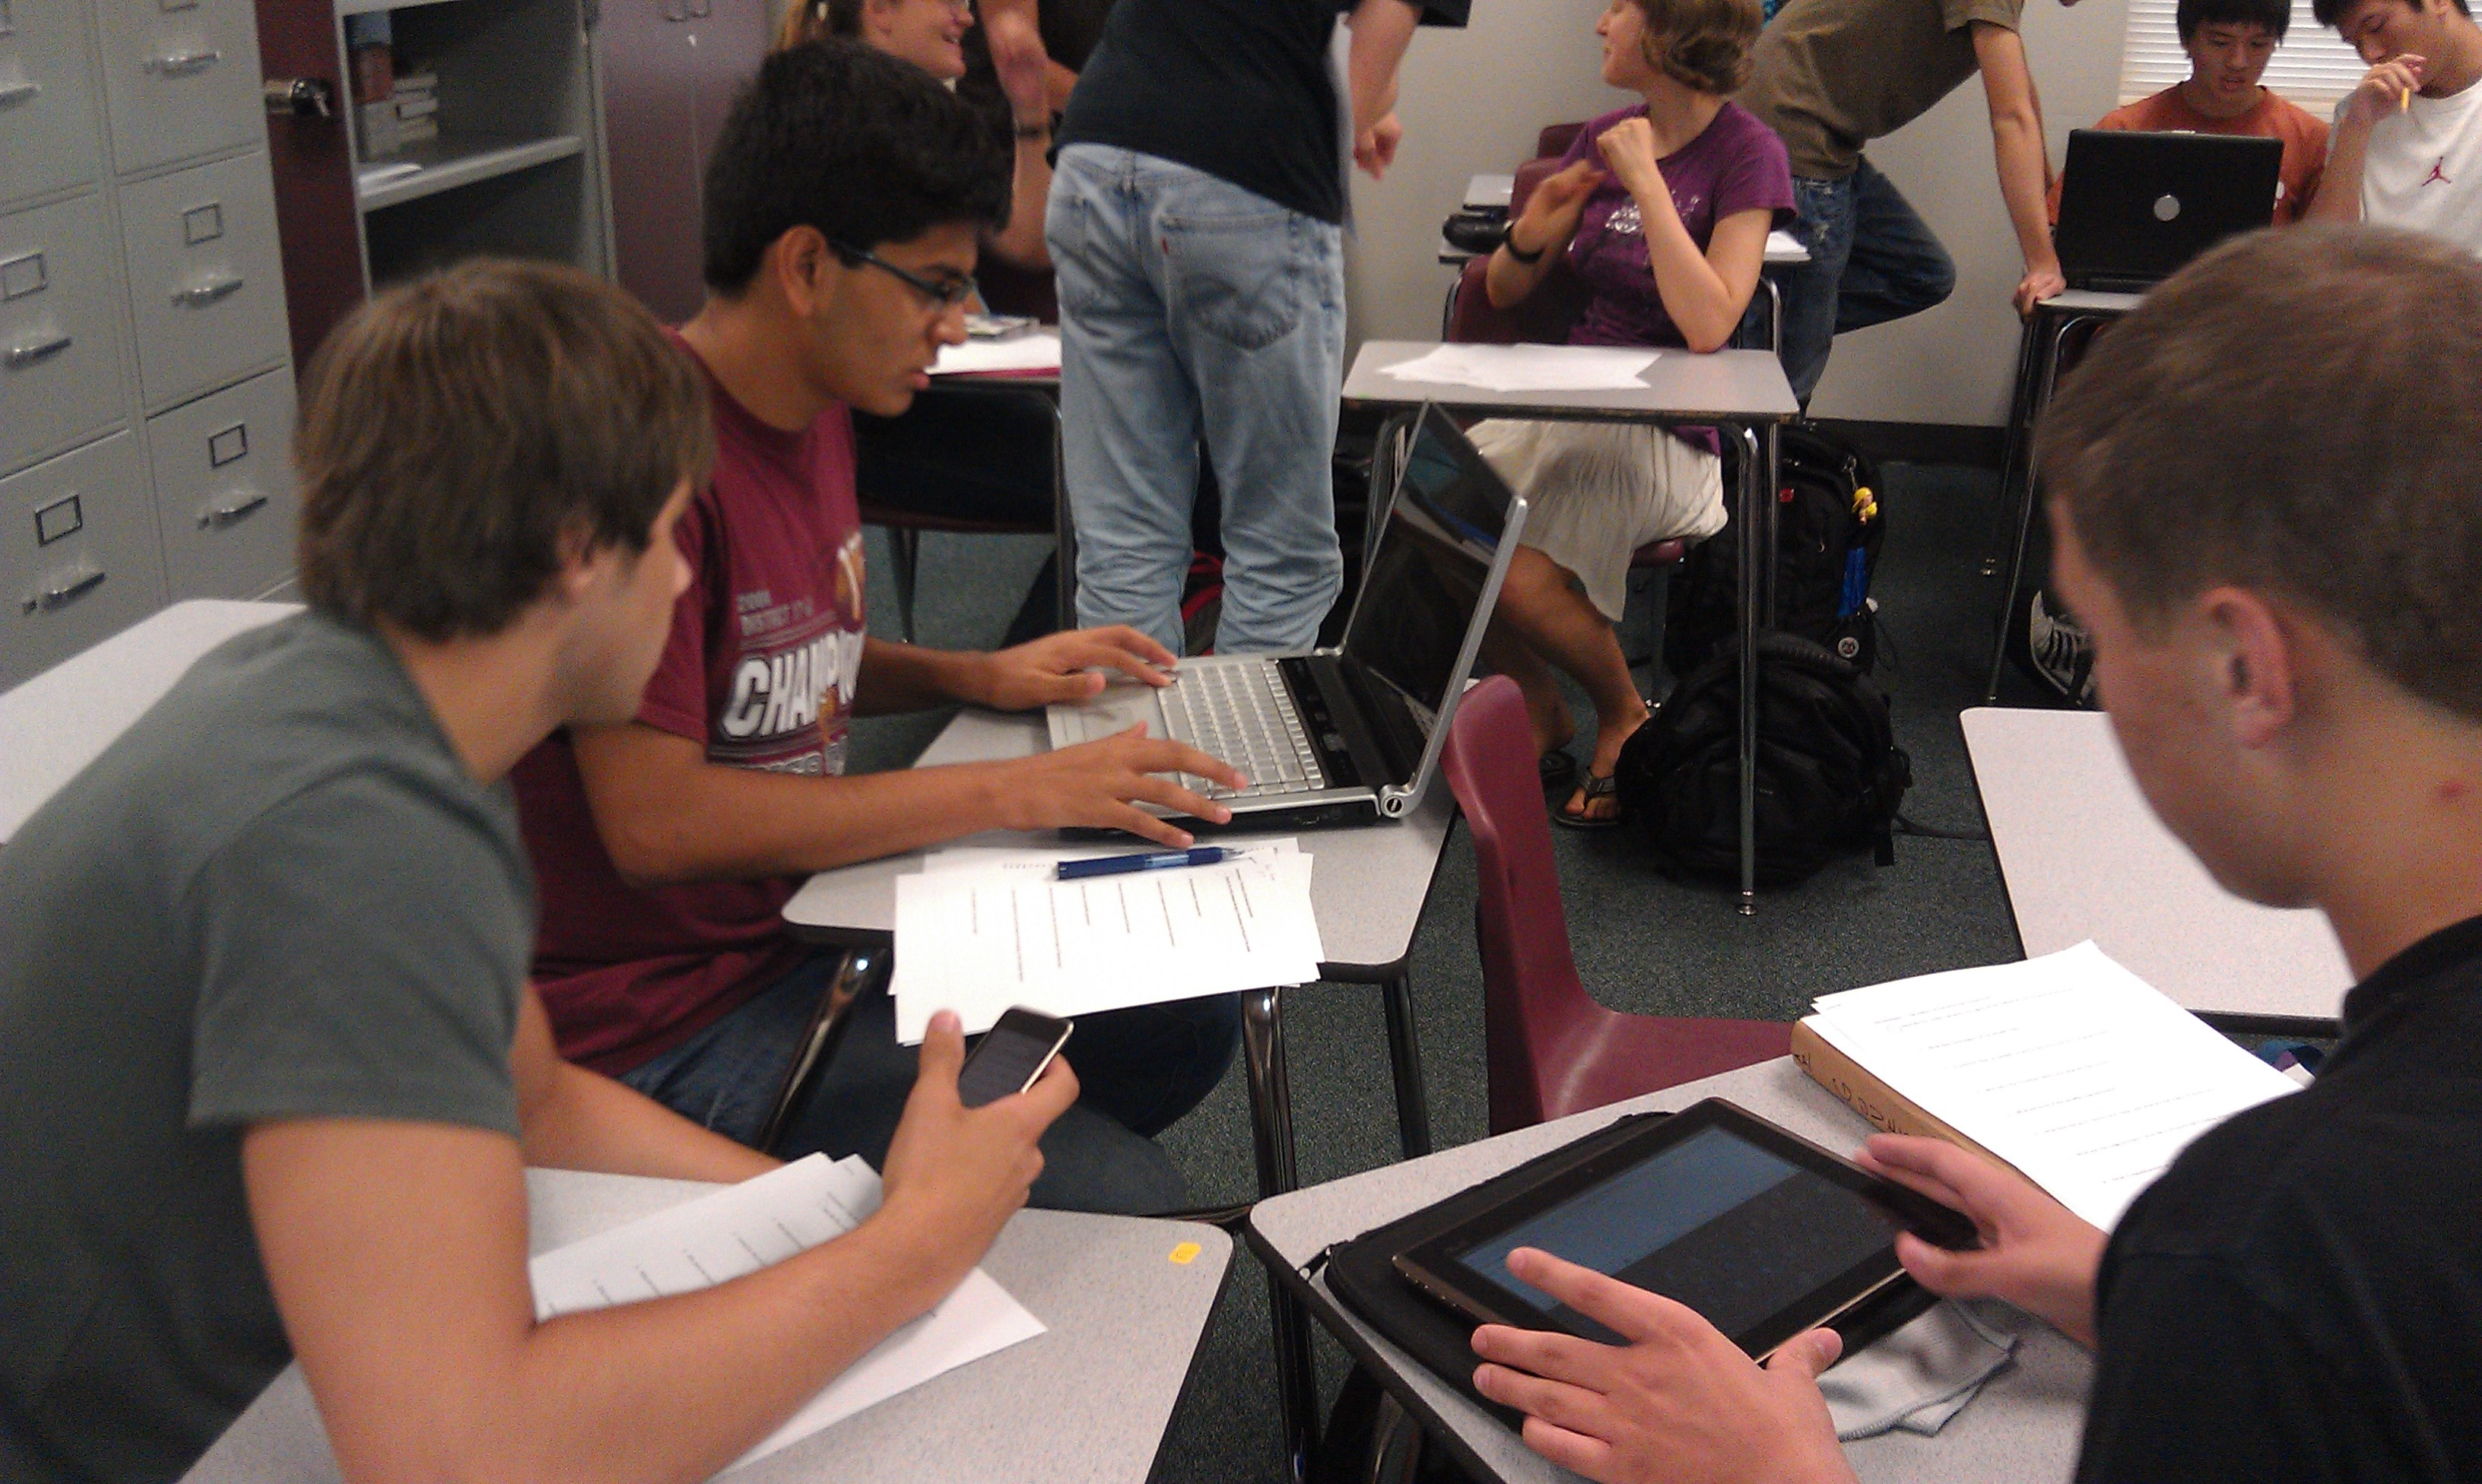 school wireless networks make it possible for students using mobile devices in the classroom to work together